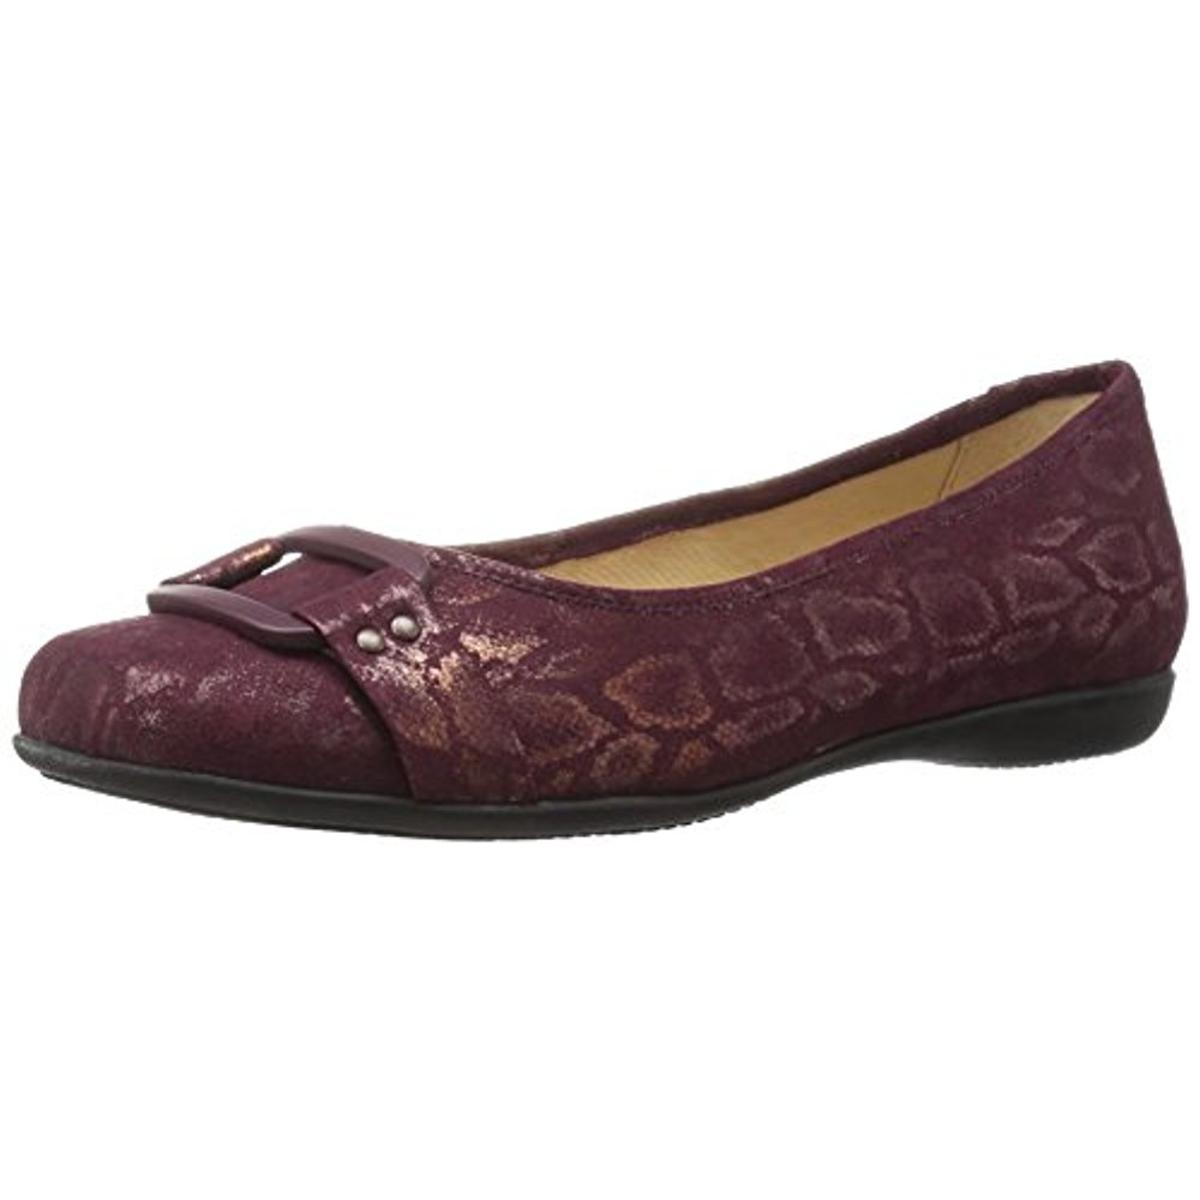 Trotters Womens Sizzle Signature Ballet Flats by Trotters